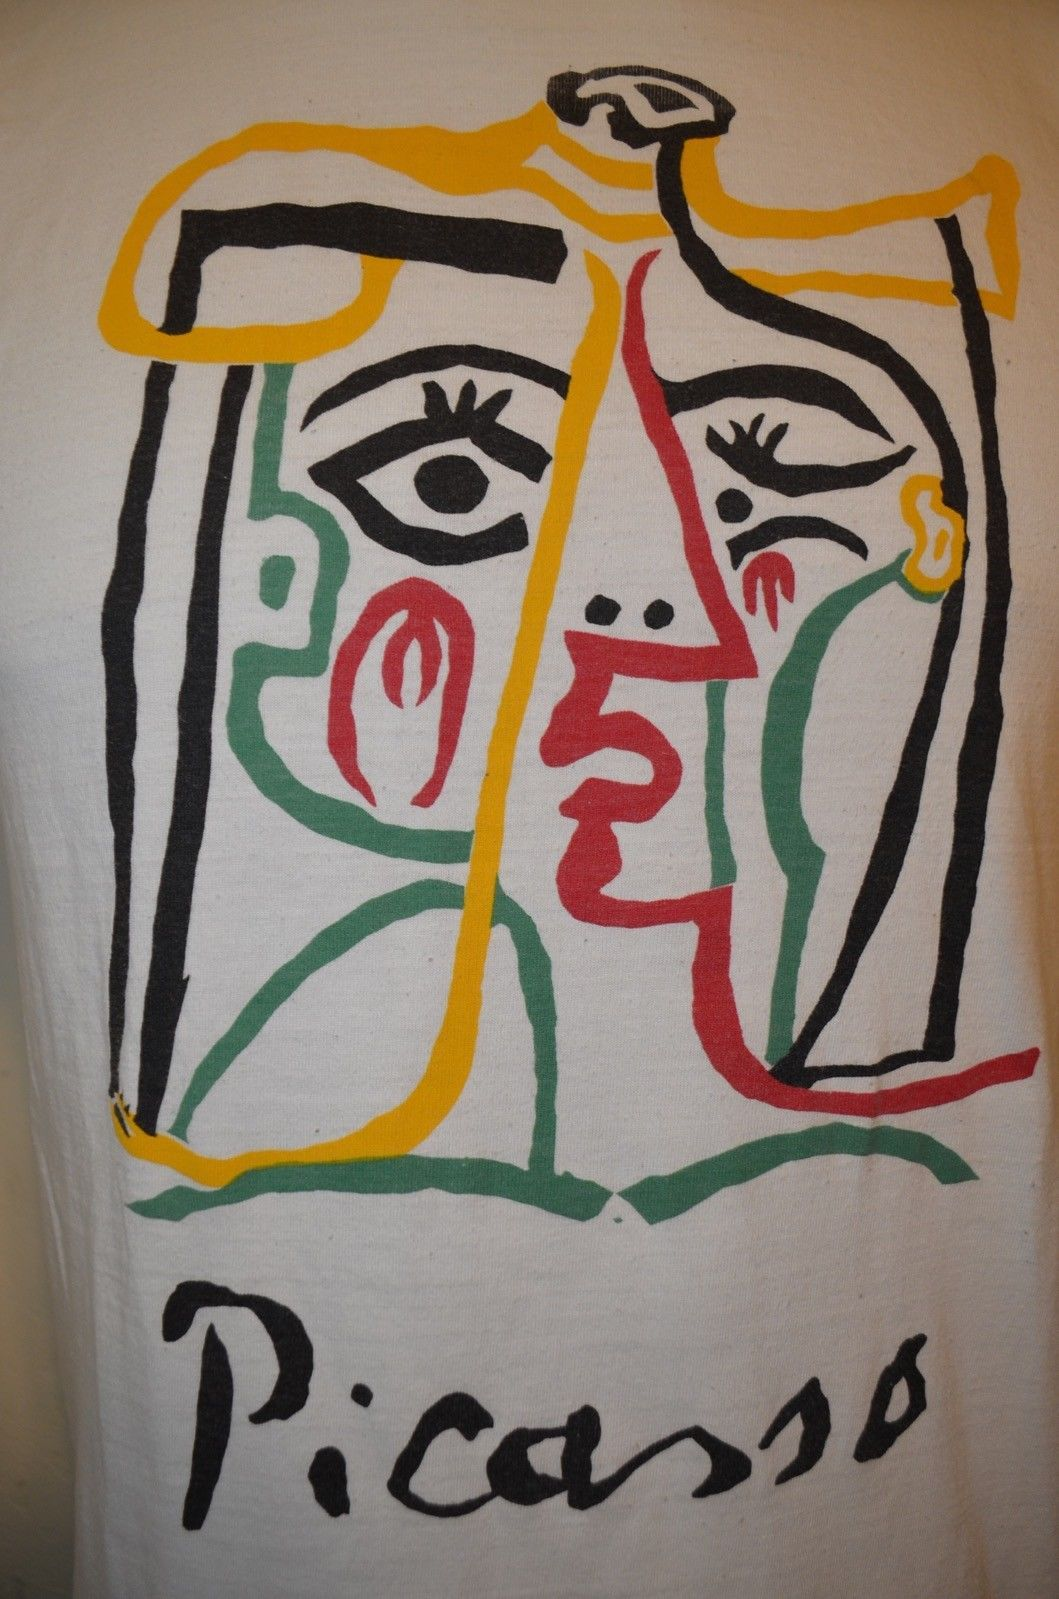 Pinturas Angar Details About Picasso Face Bird Mod Art Painting Surreal Abstract